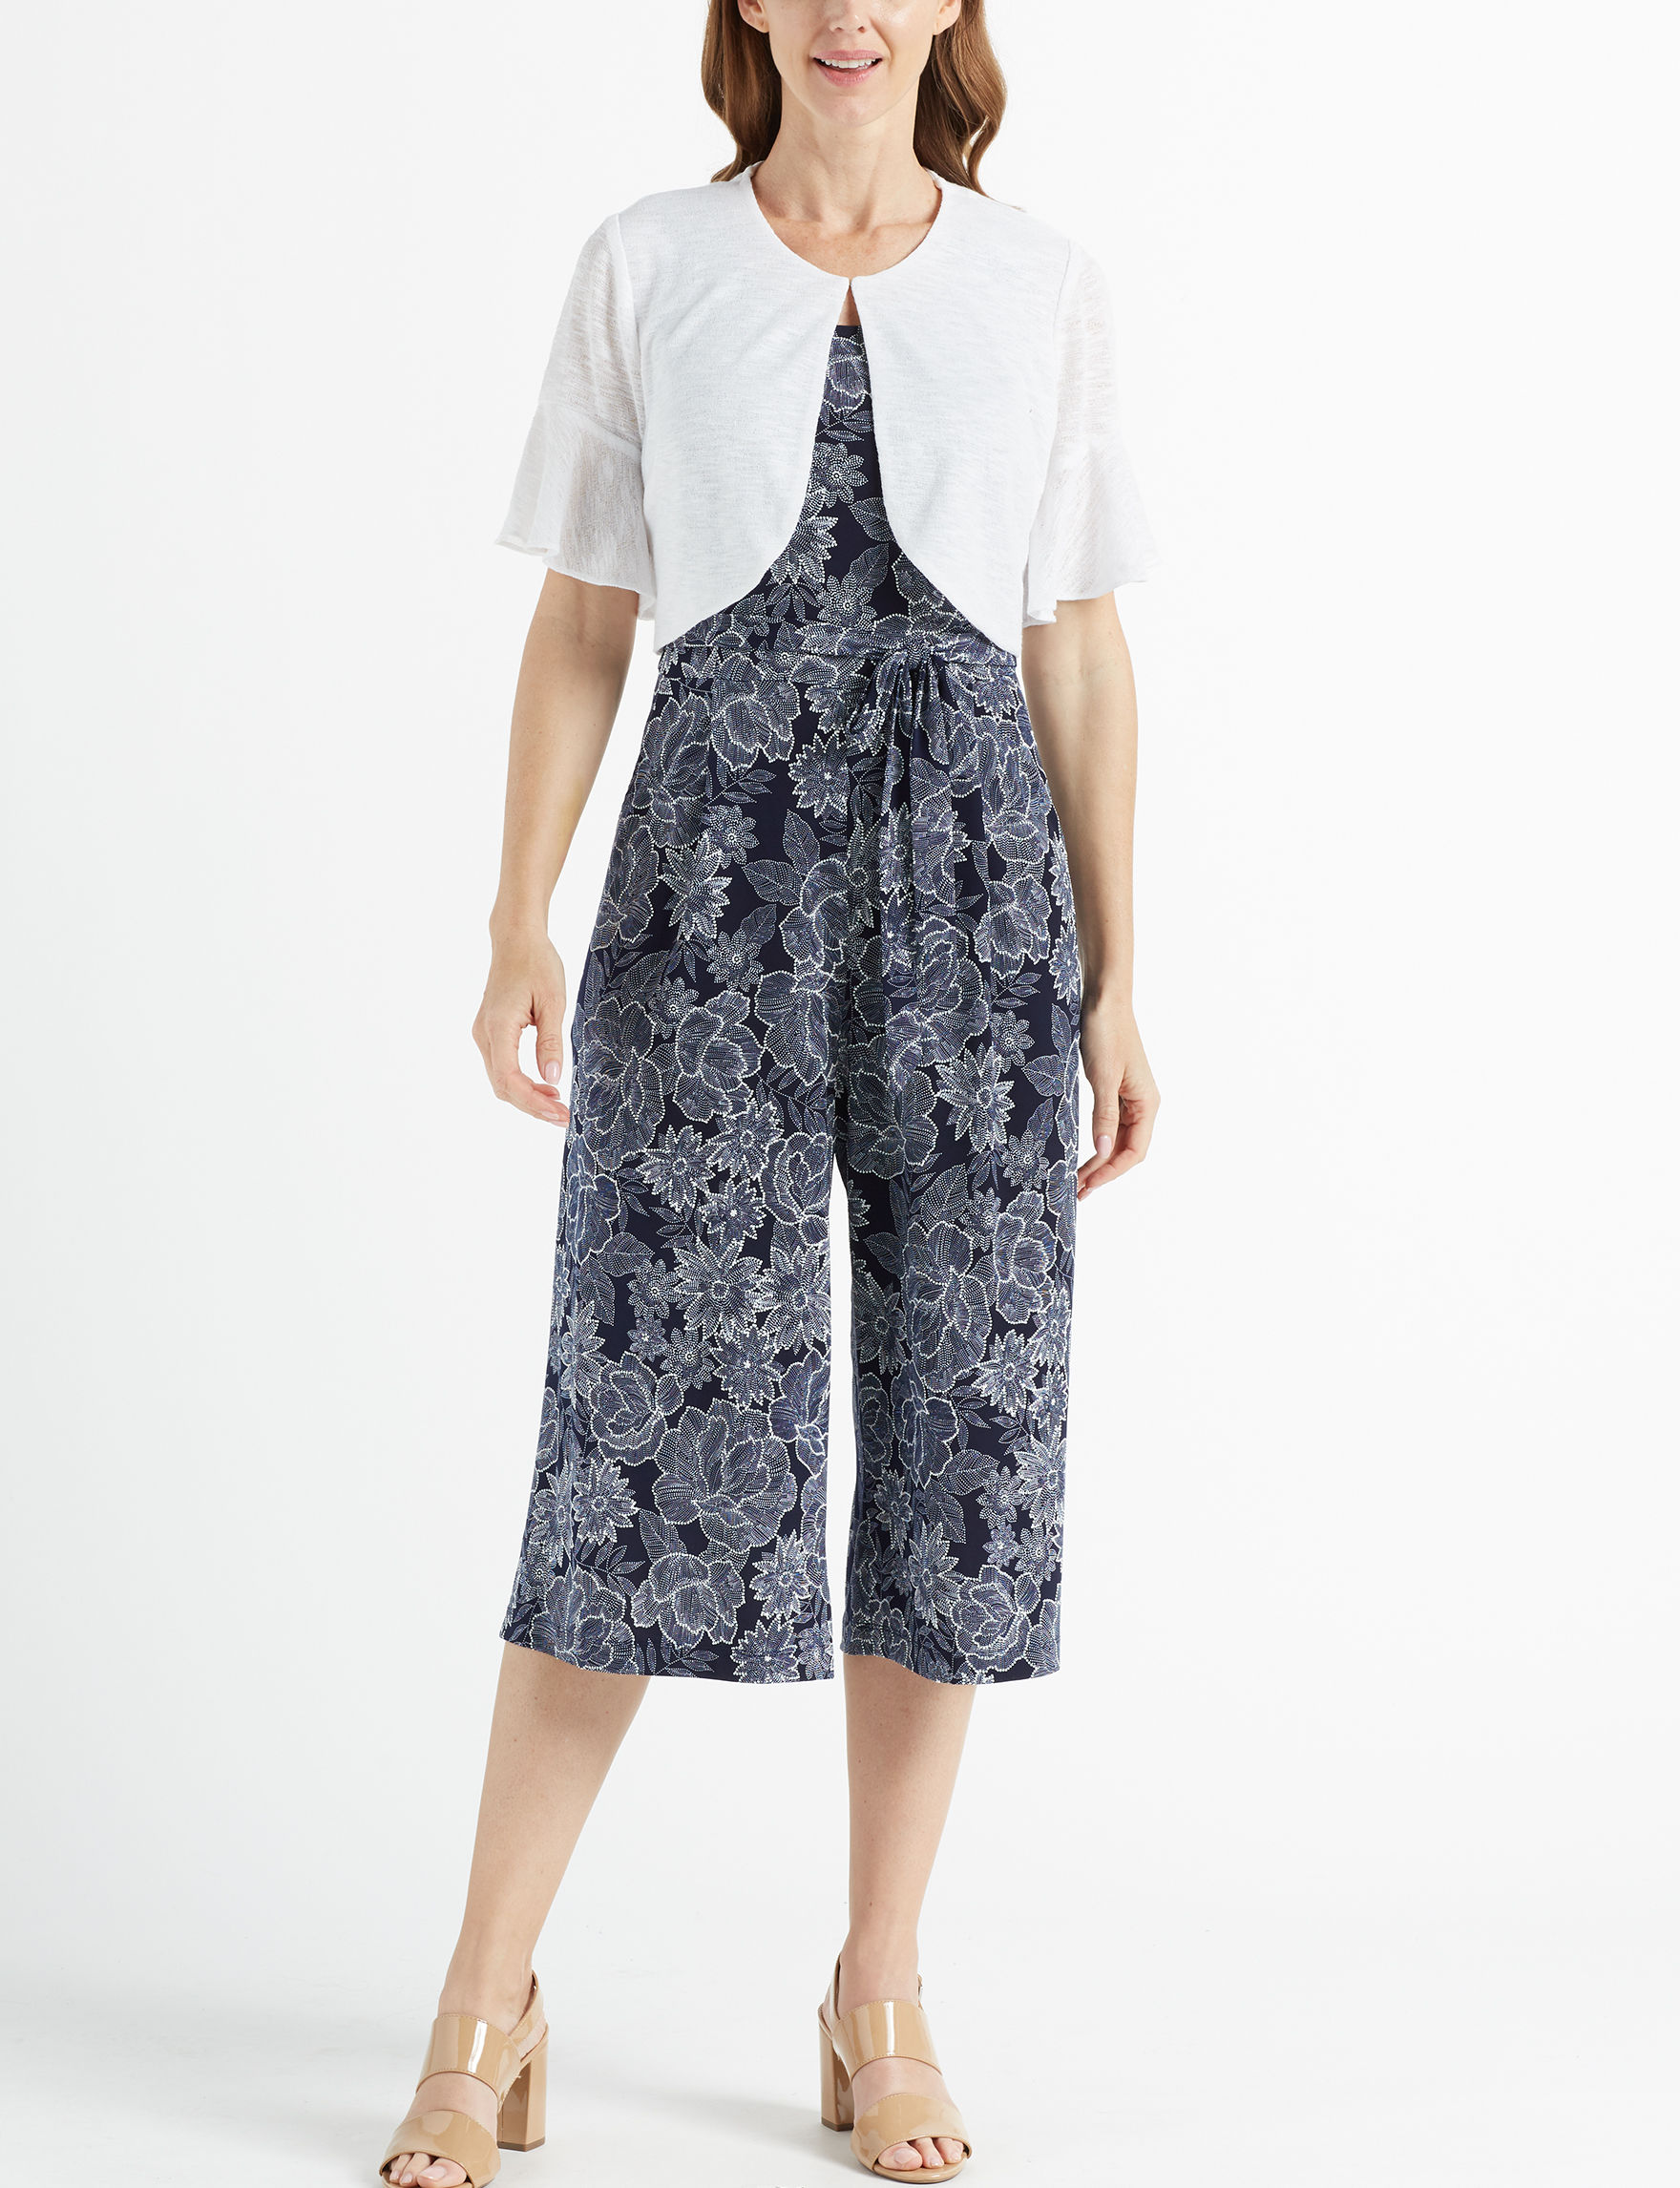 Perceptions Navy / White Everyday & Casual